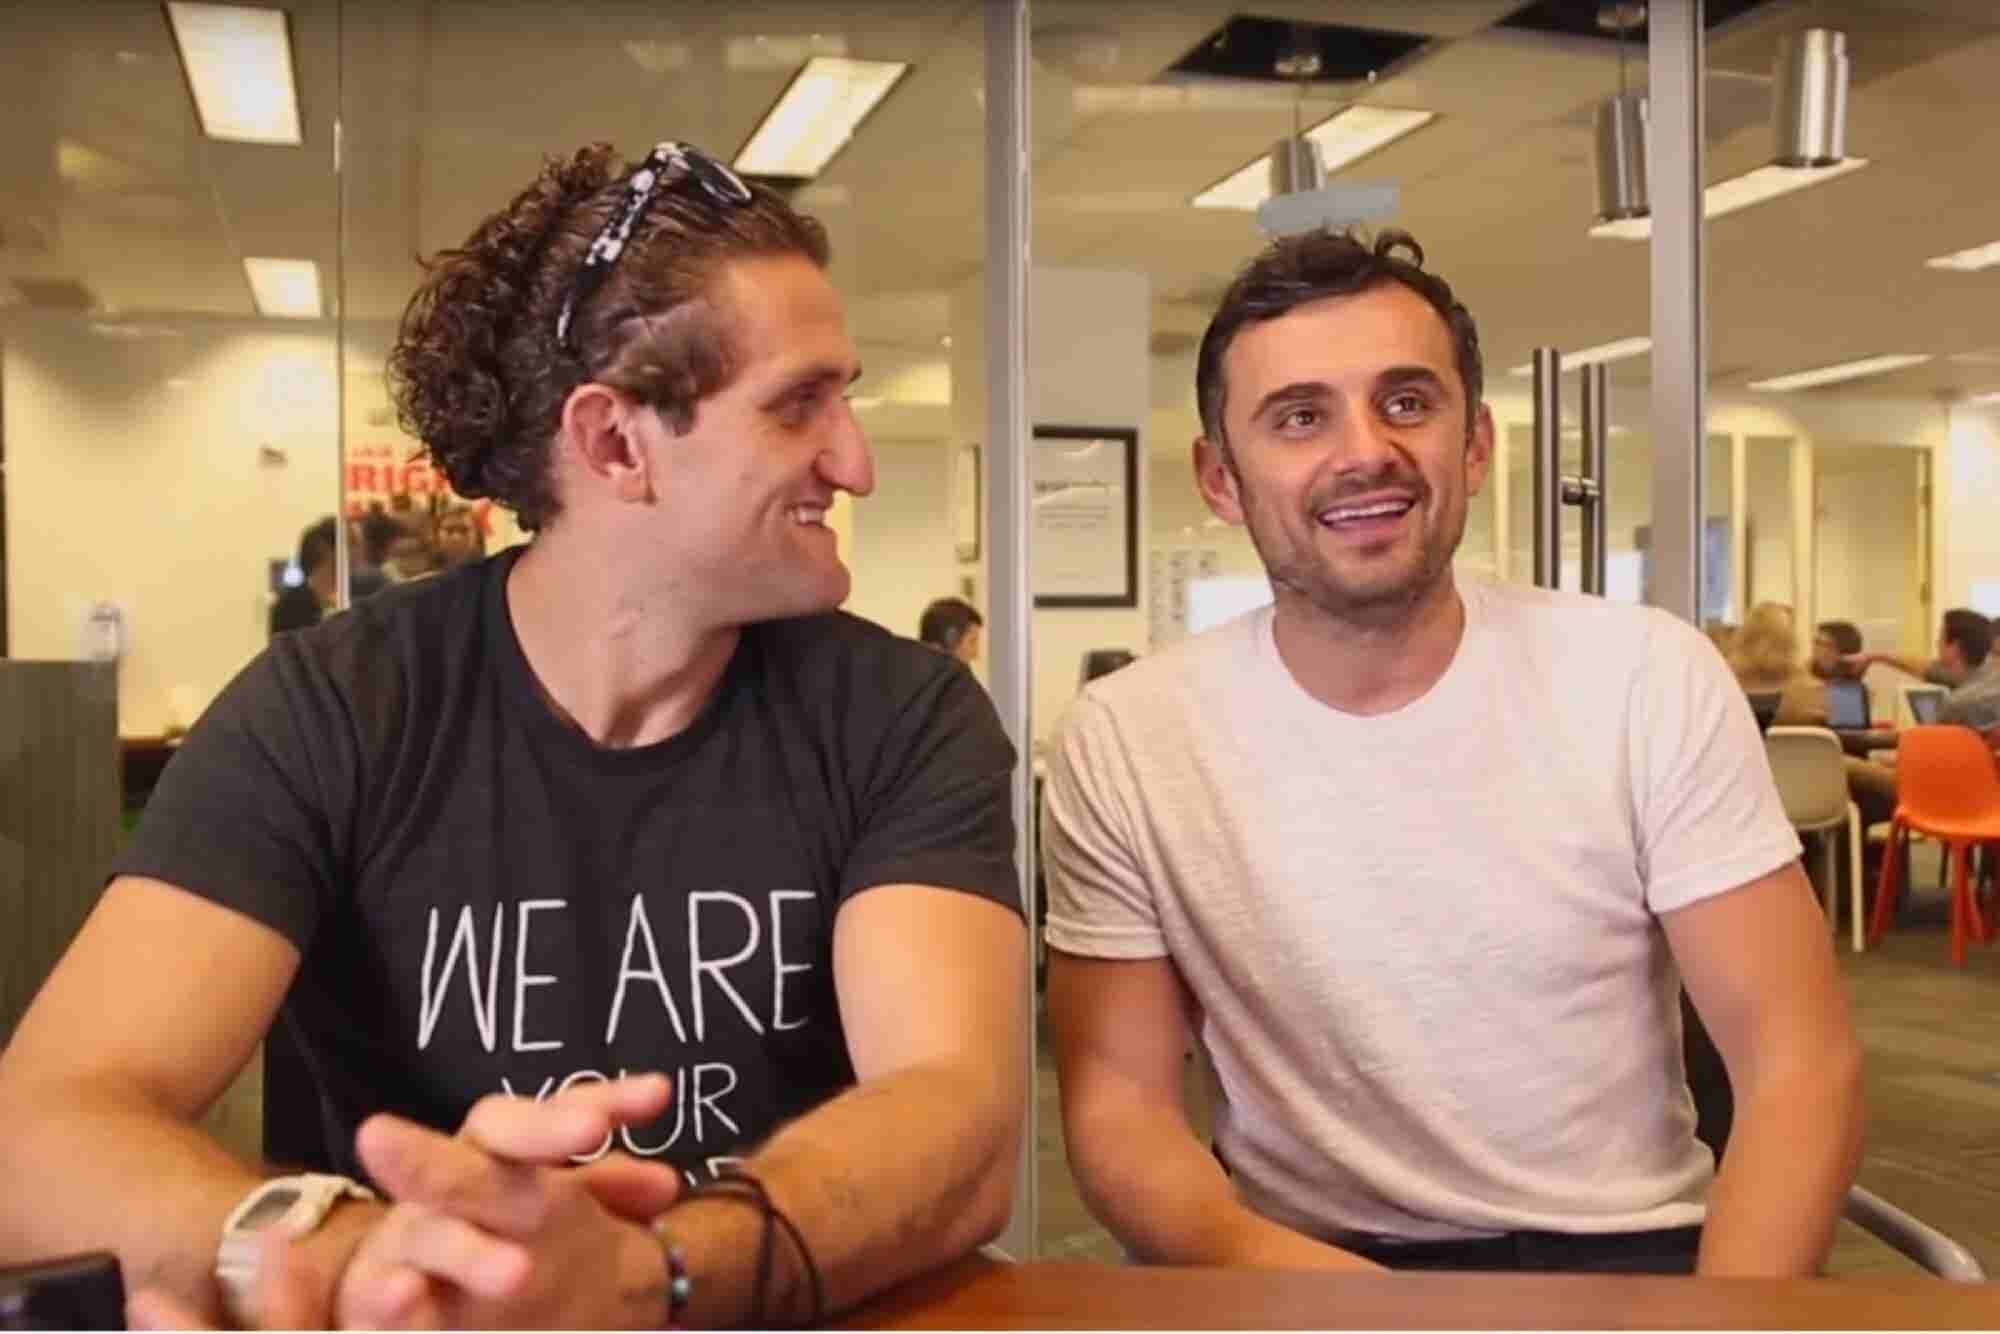 Watch Our Livestream of Gary Vaynerchuk and Casey Neistat Wednesday at 7 p.m. EST